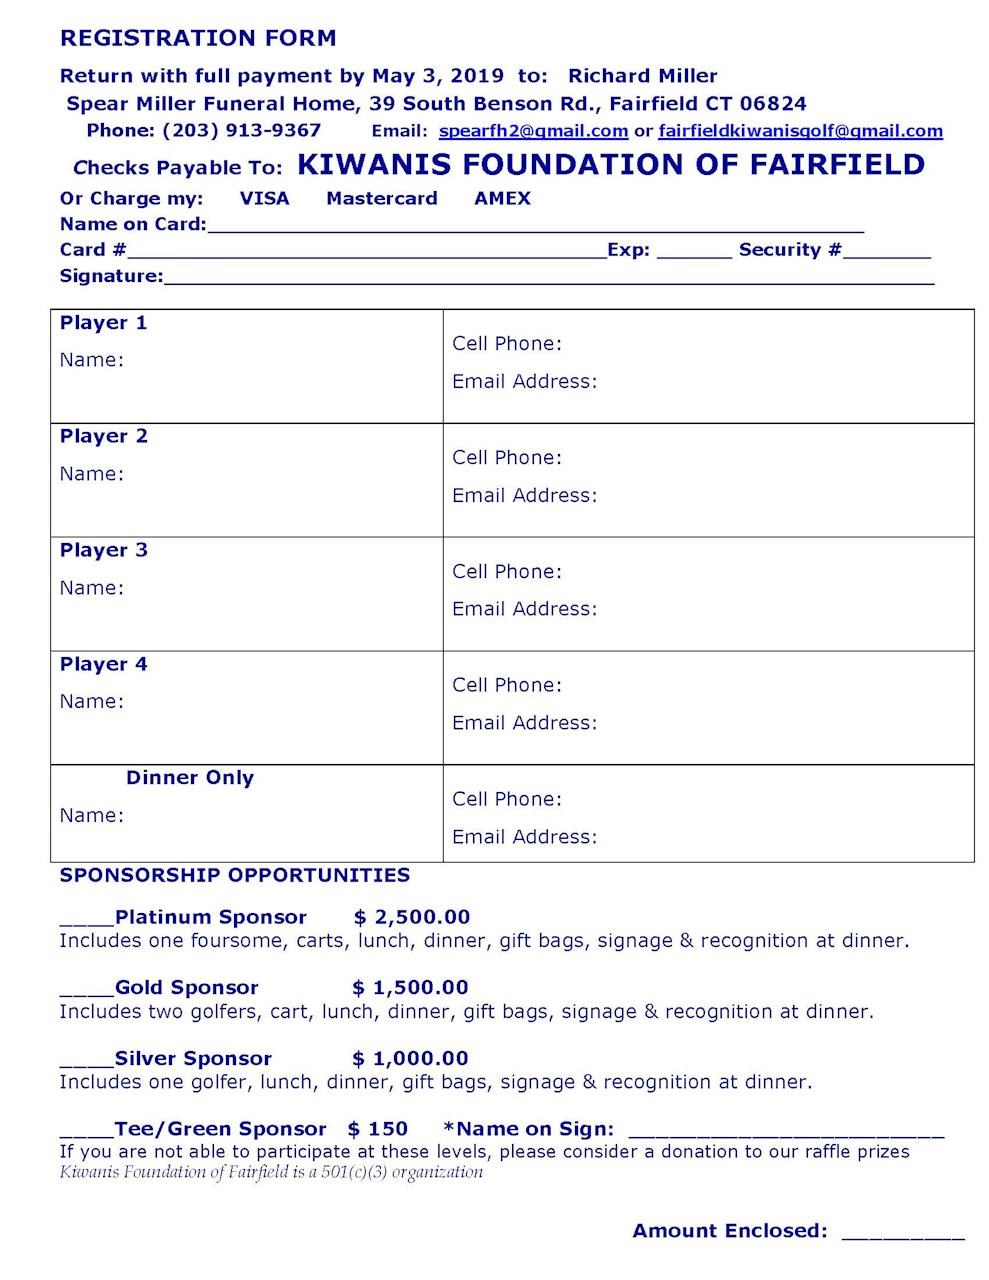 Fairfield - Kiwanis International